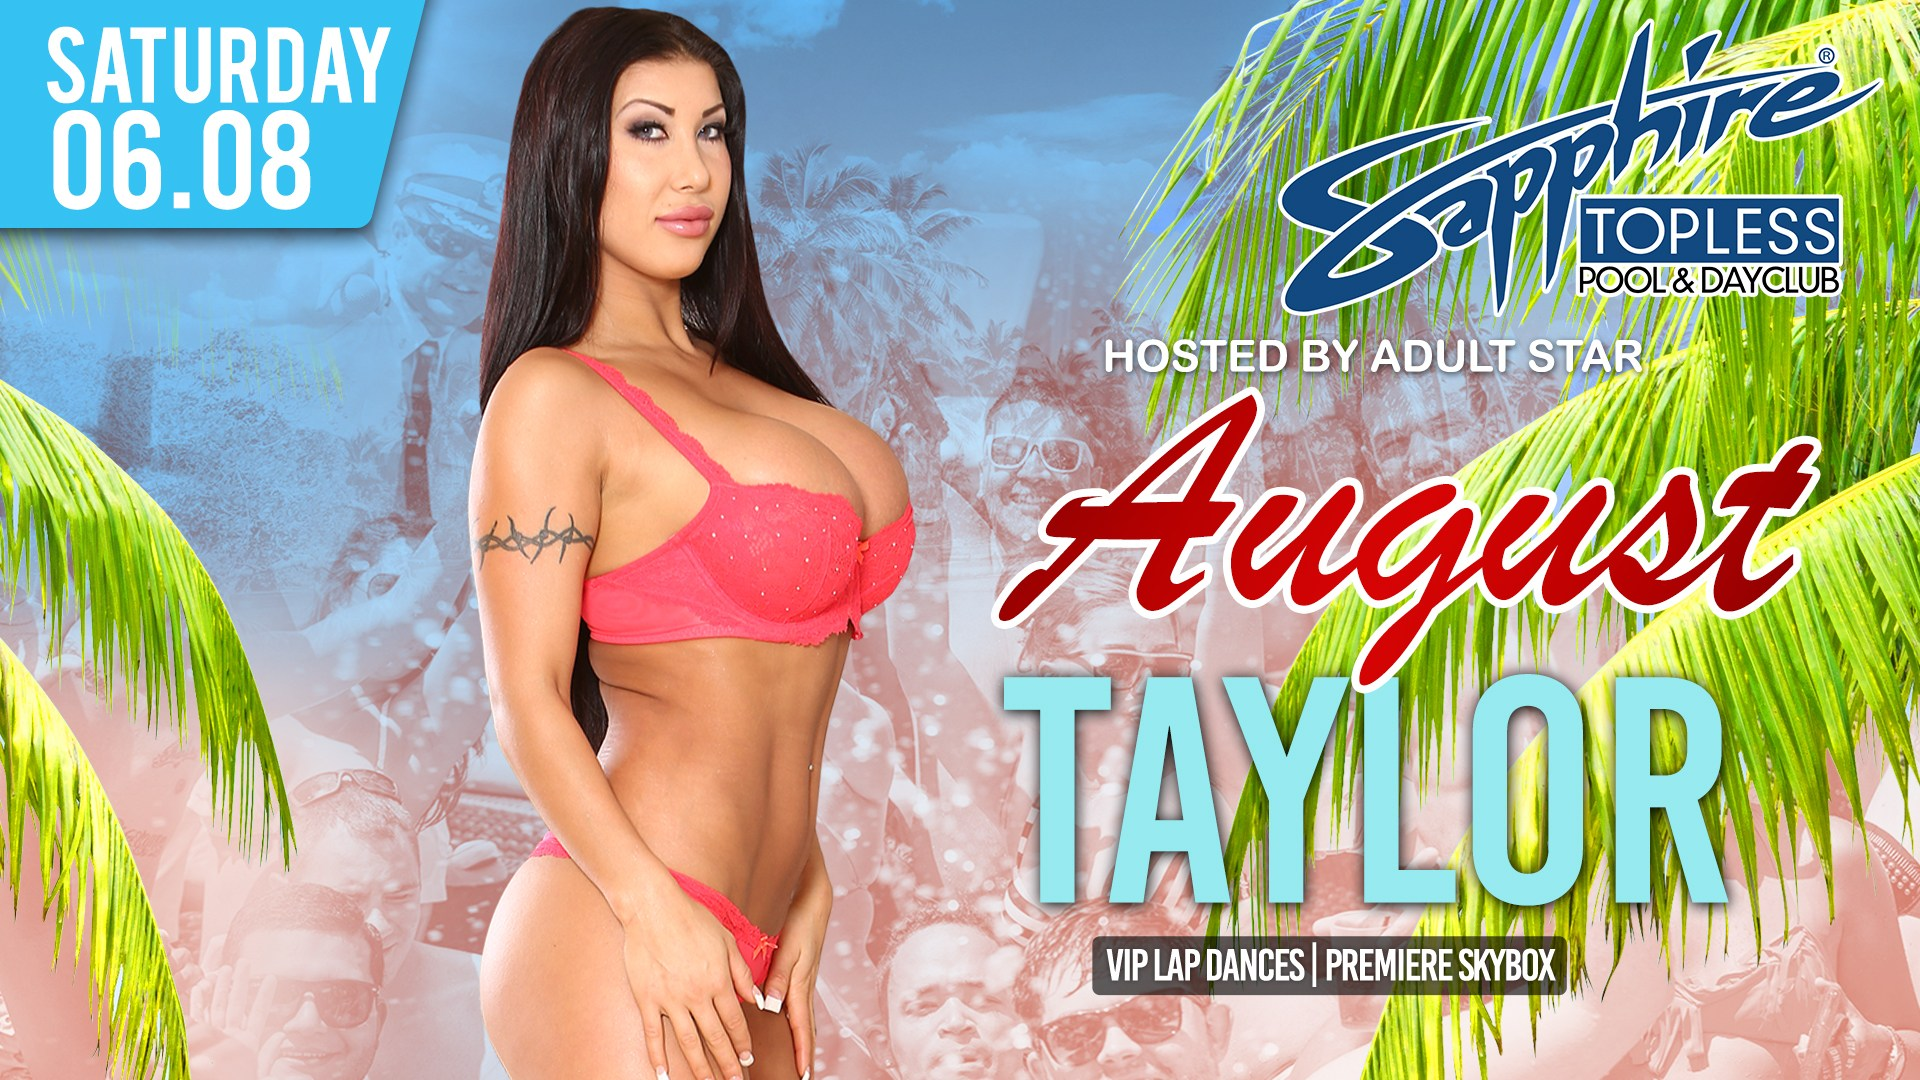 August Taylor Pics august taylor hosts sapphire topless dayclub saturday, june